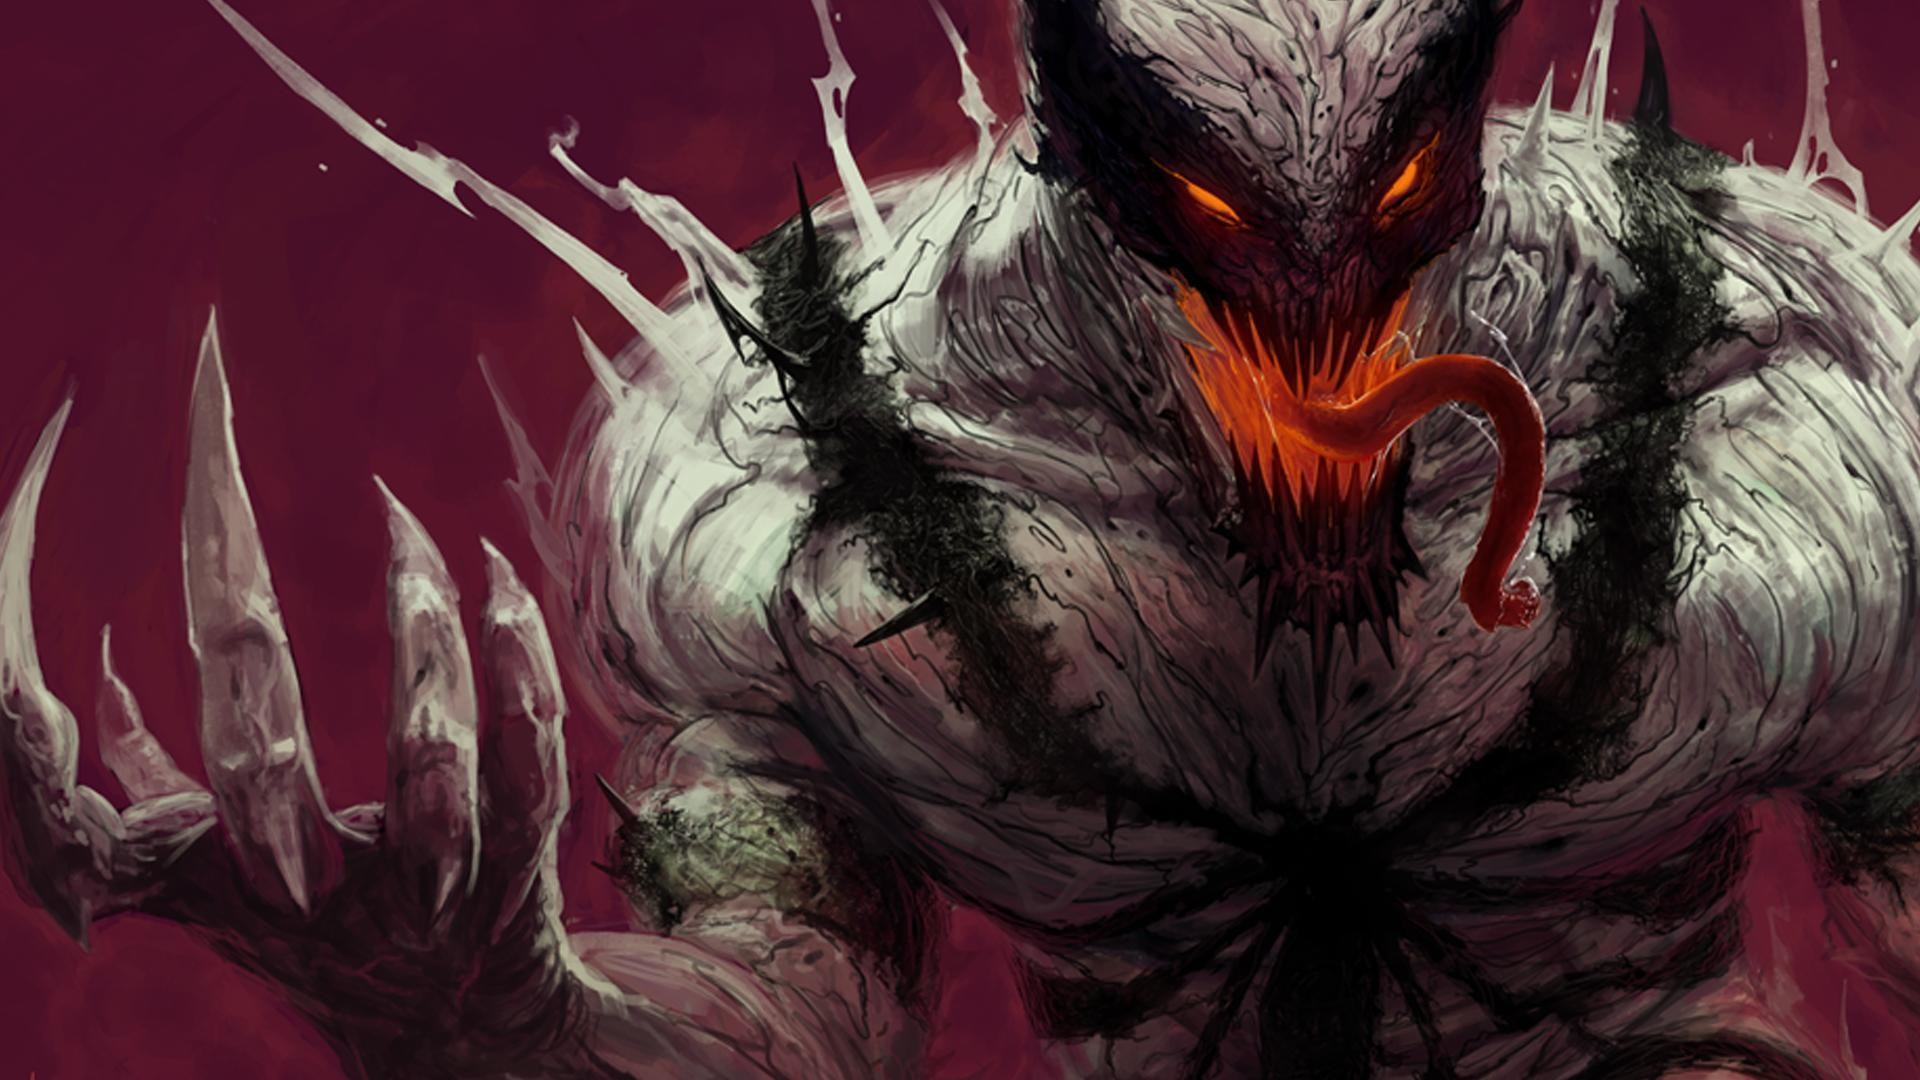 75+ anti venom wallpapers on wallpaperplay